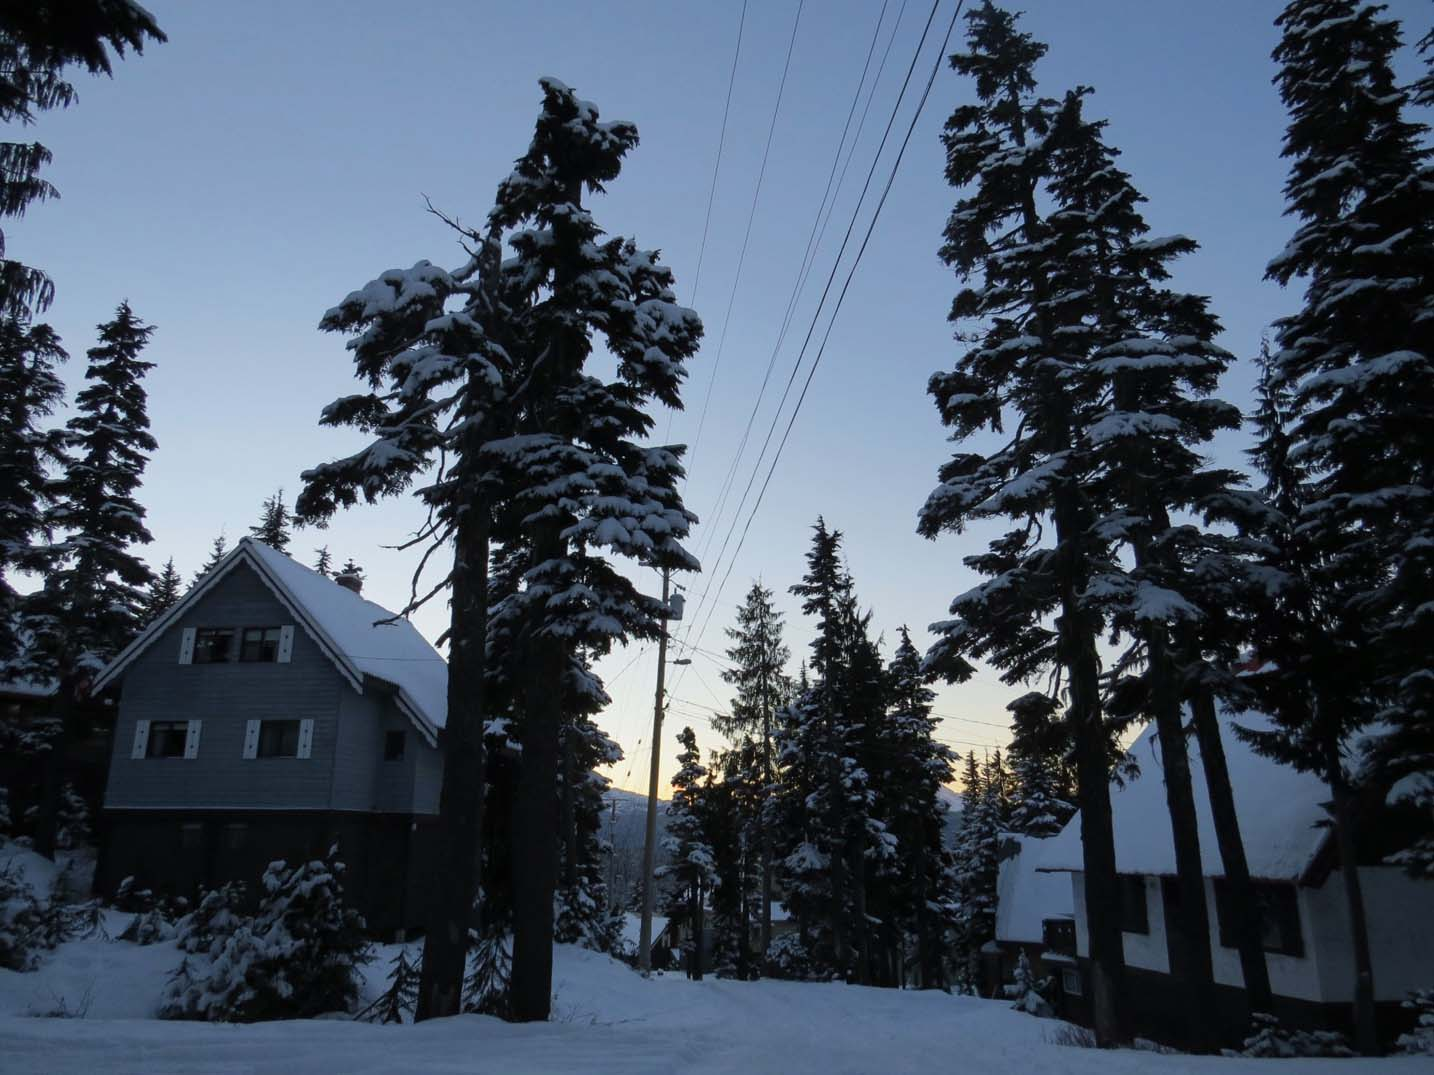 8 Reasons Why Winter in Canada is Awesome - Alpine Village